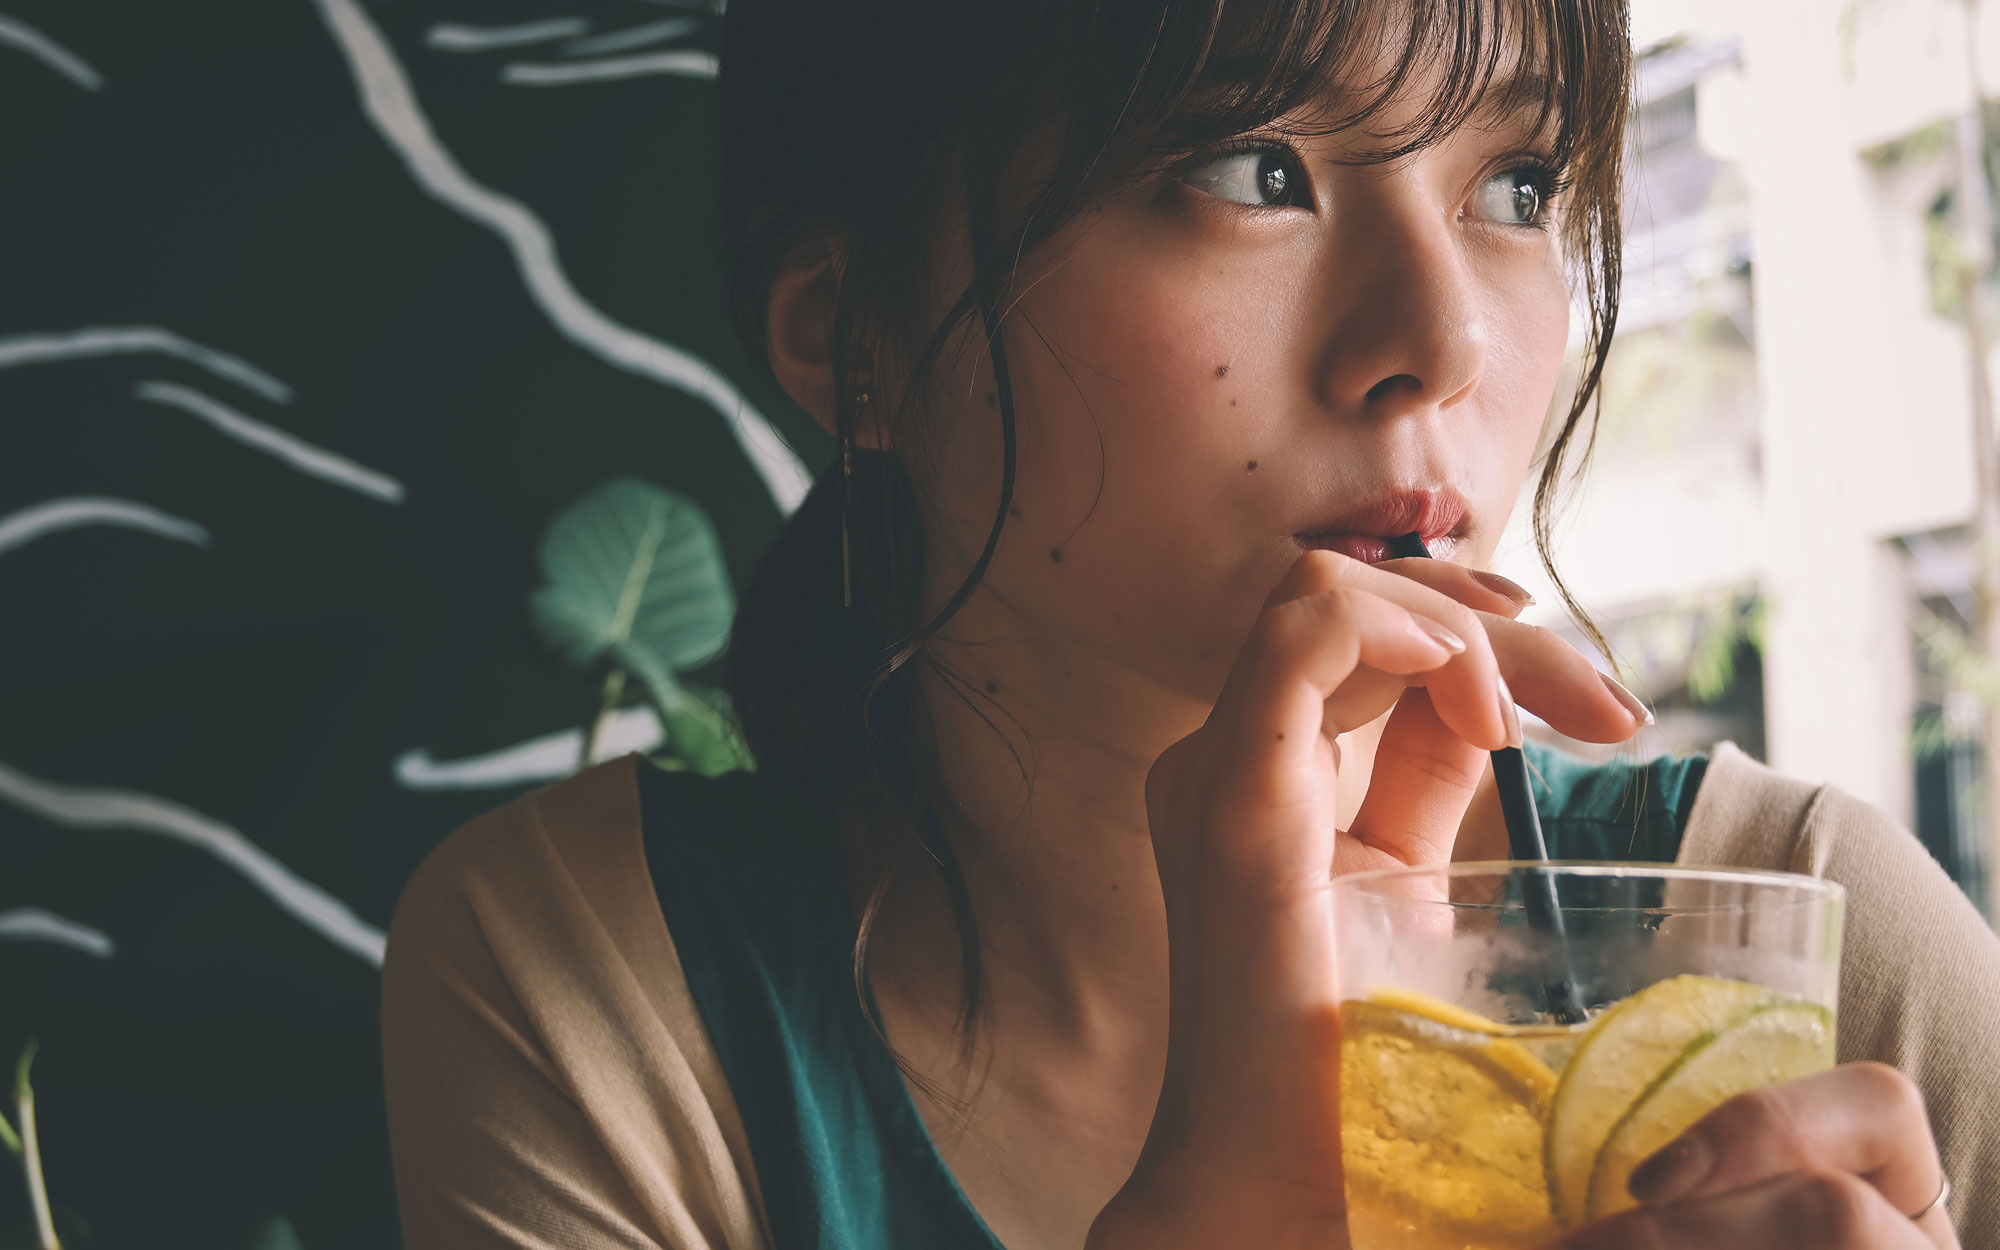 Photo of a woman drinking from a glass through a straw, taken with the Z 50 and NIKKOR Z DX 16-50mm f/3.5-6.3 VR lens